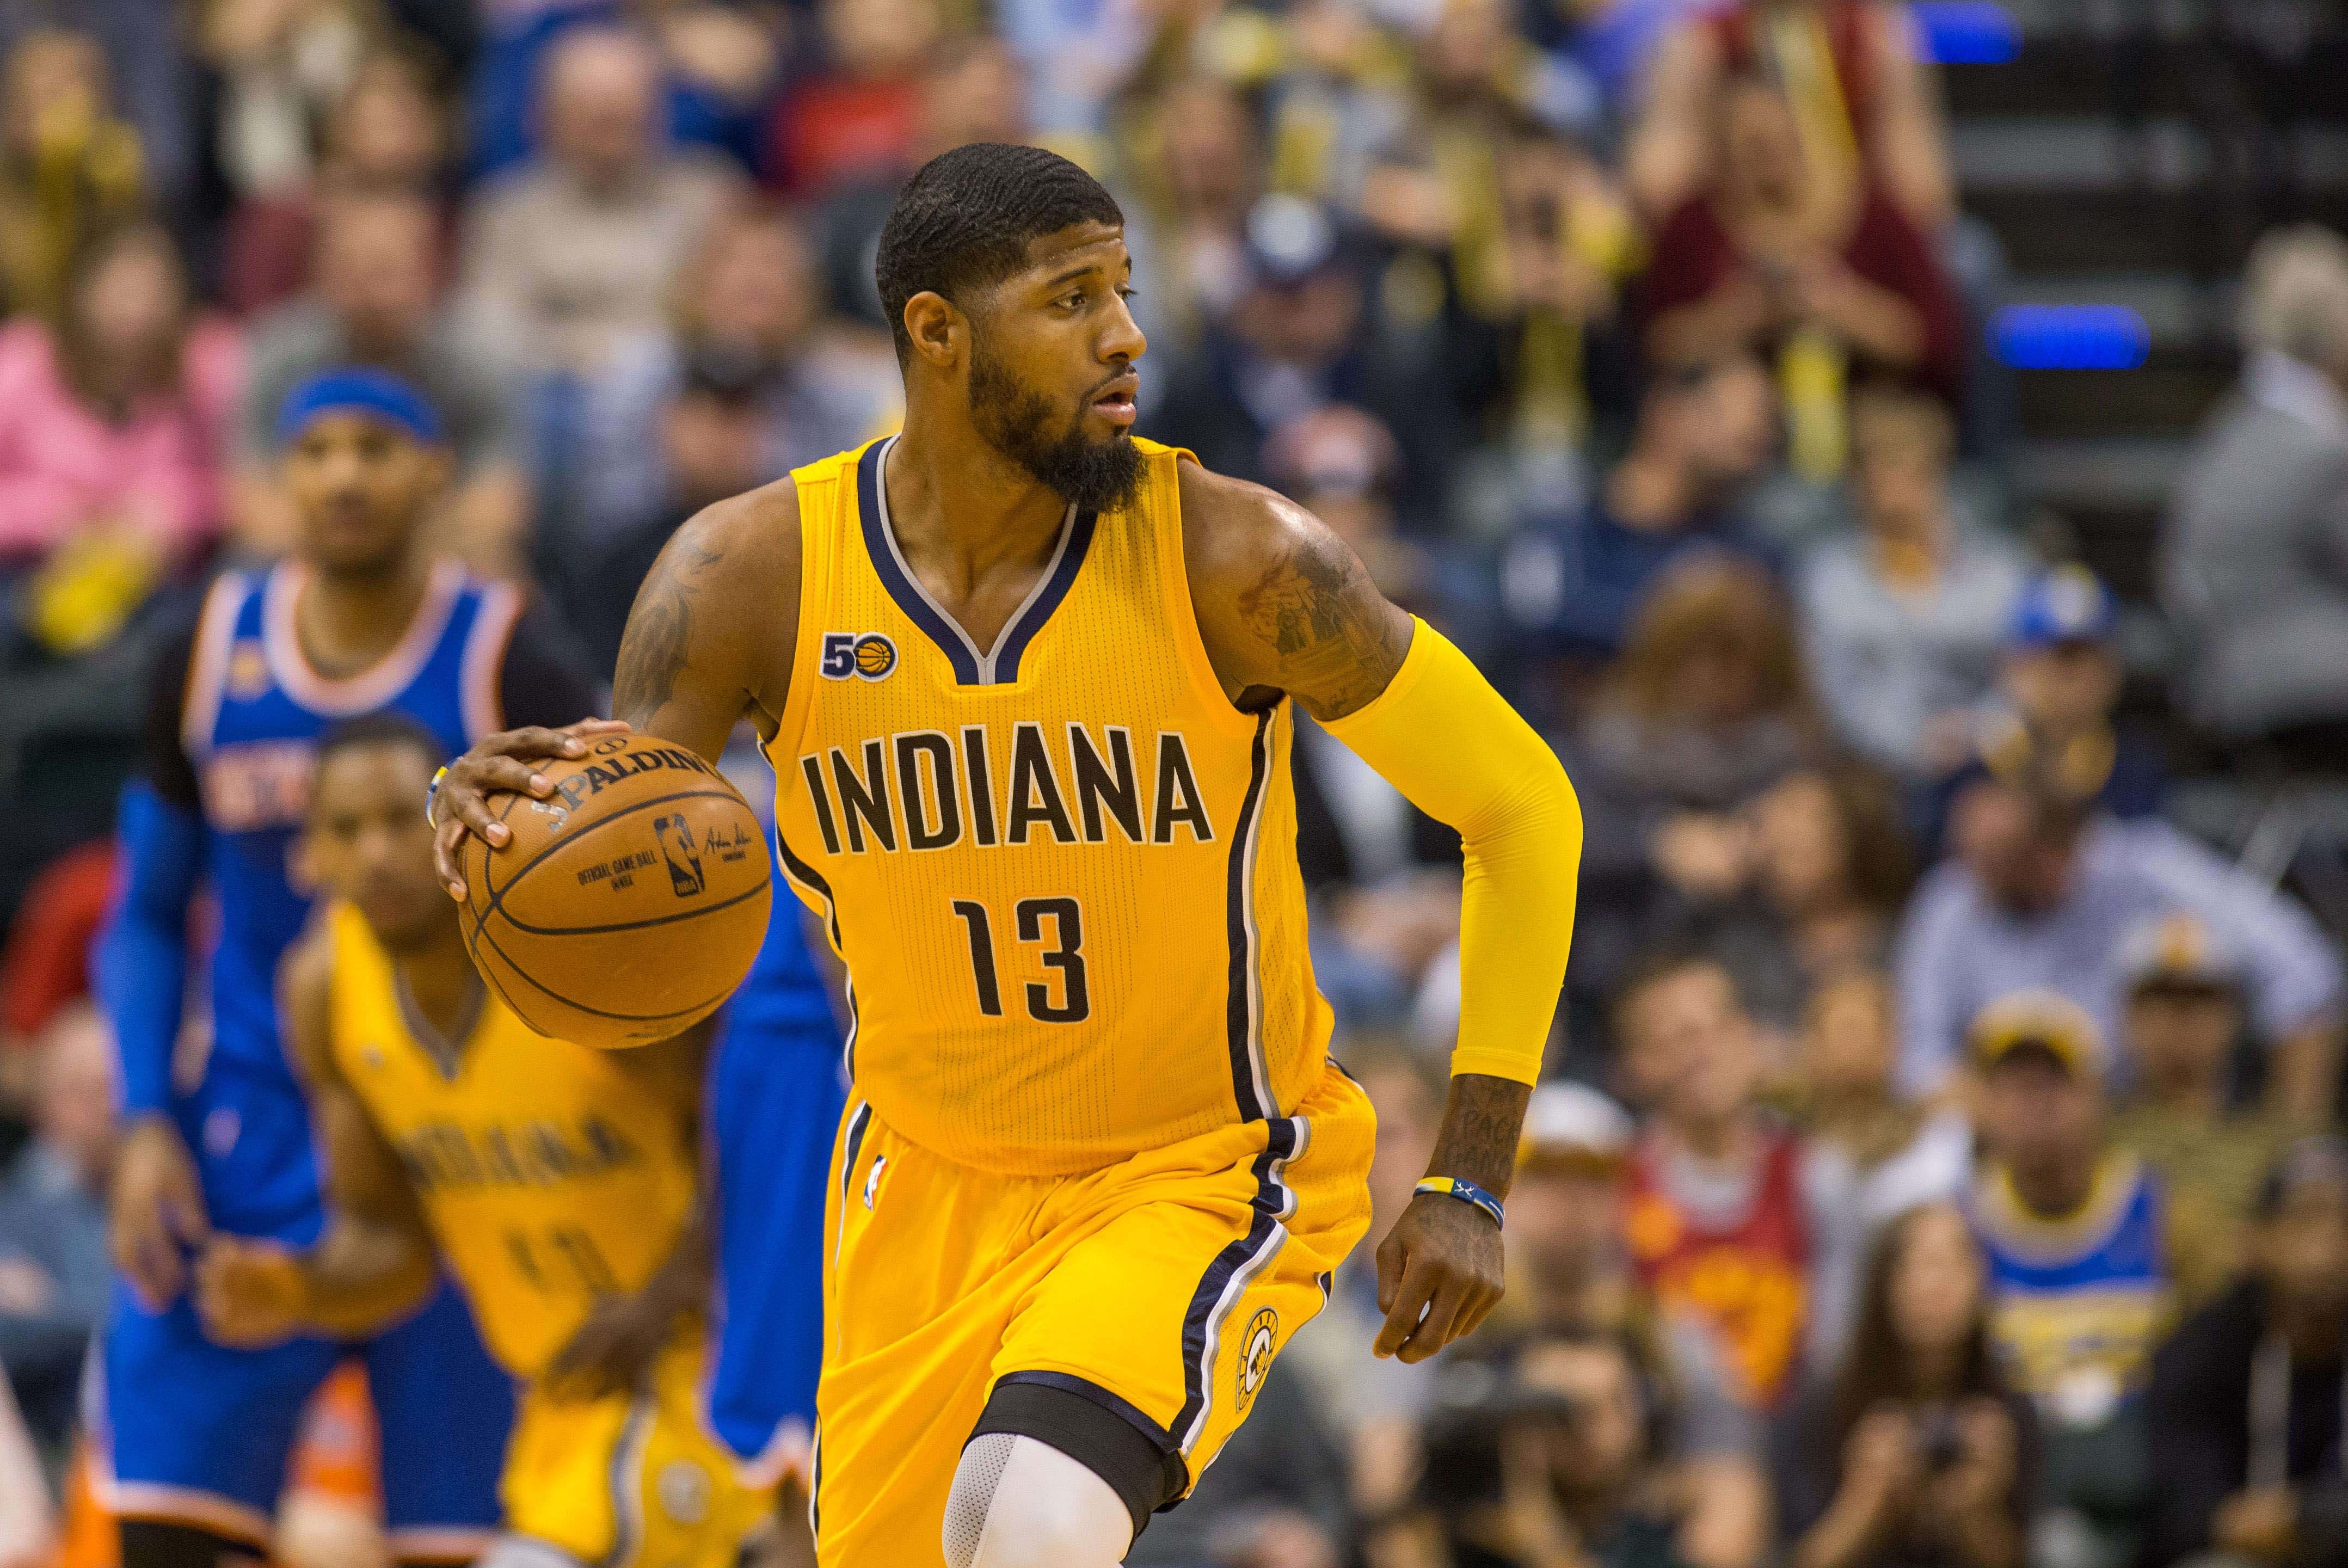 The Indiana Pacers are hoping to bolster their roster prior to the NBA trade deadline.